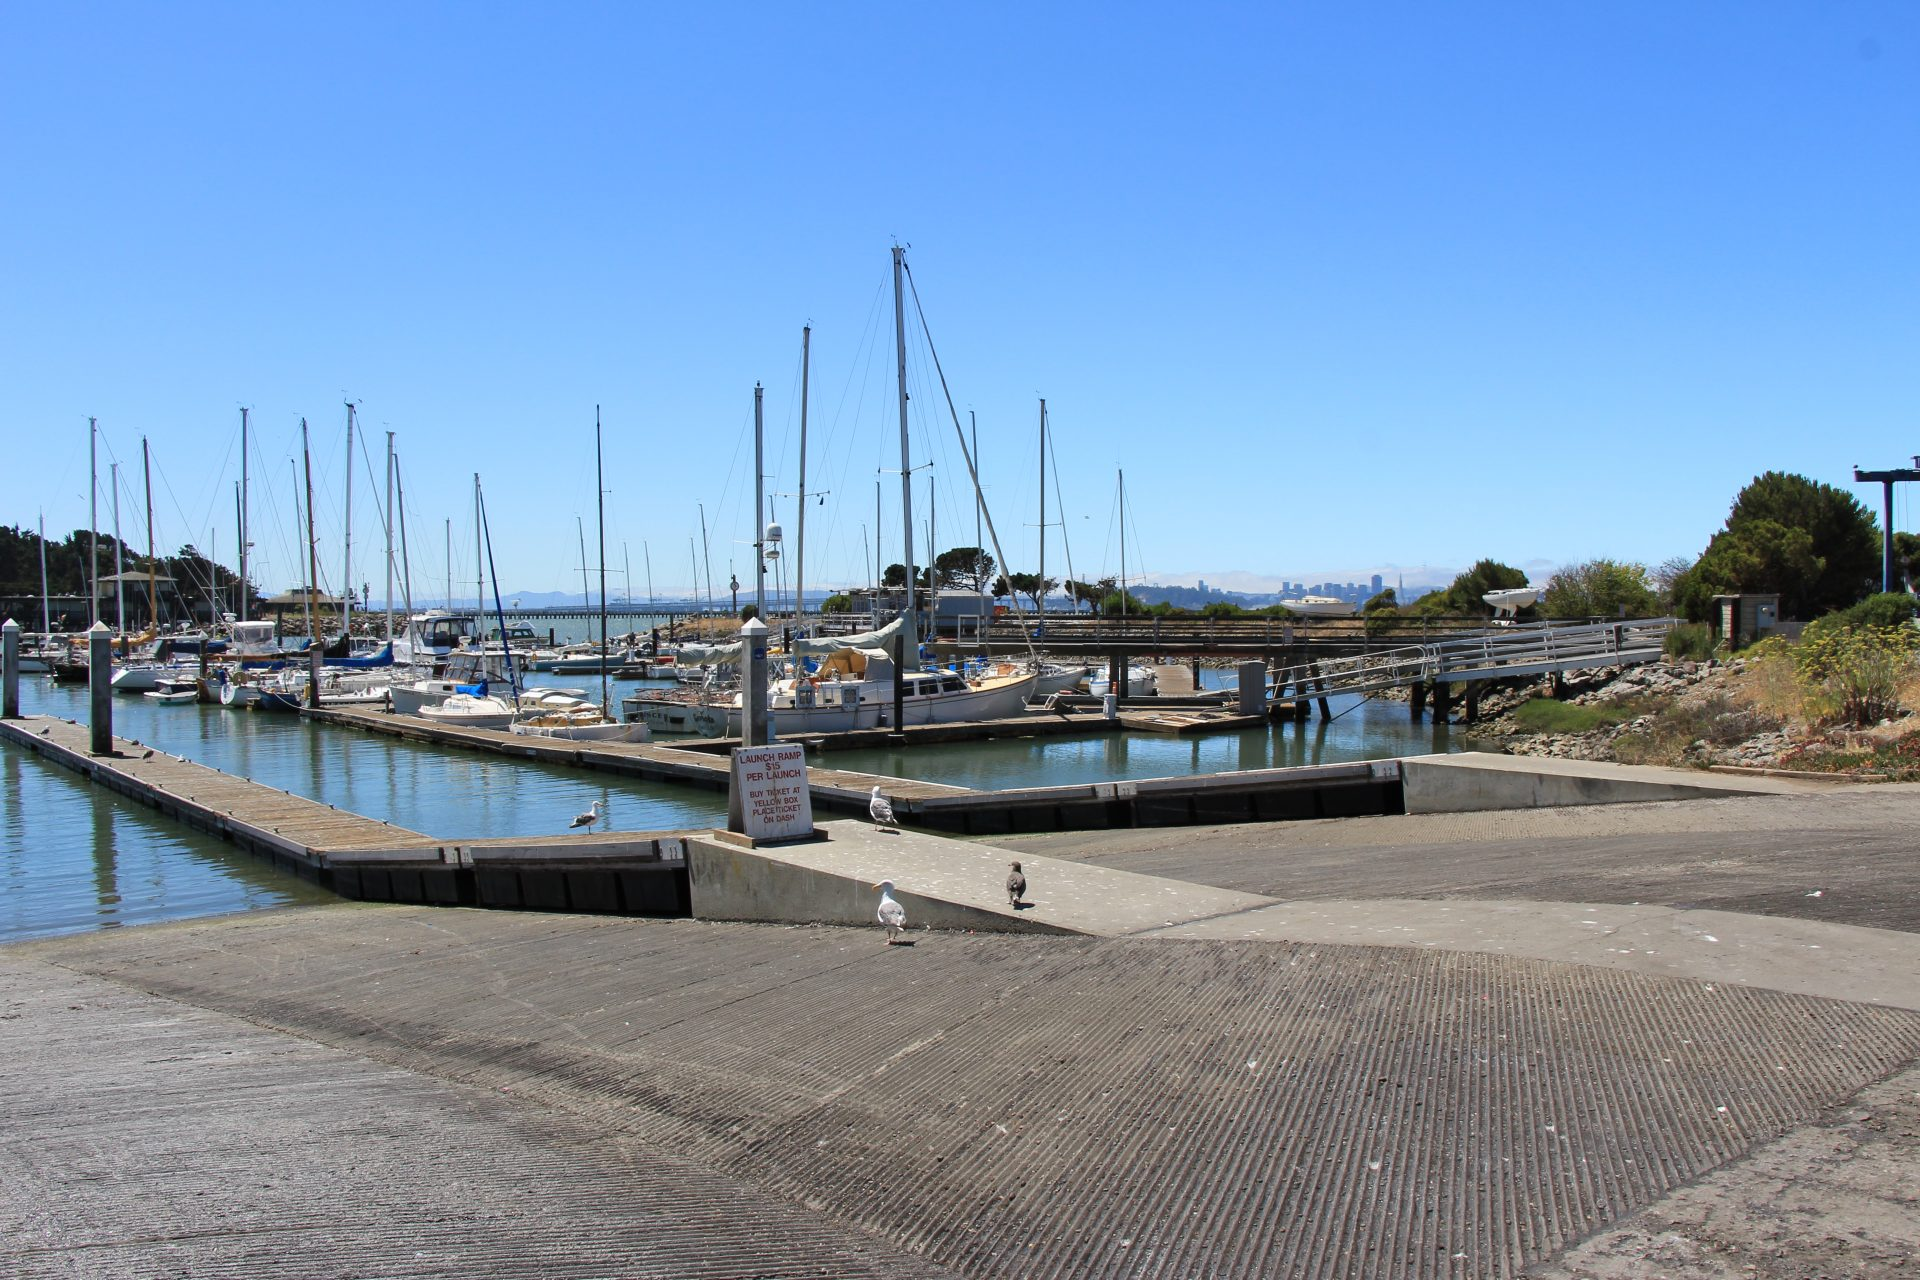 Wide boat ramp descending into water, with sailboats moored beyond